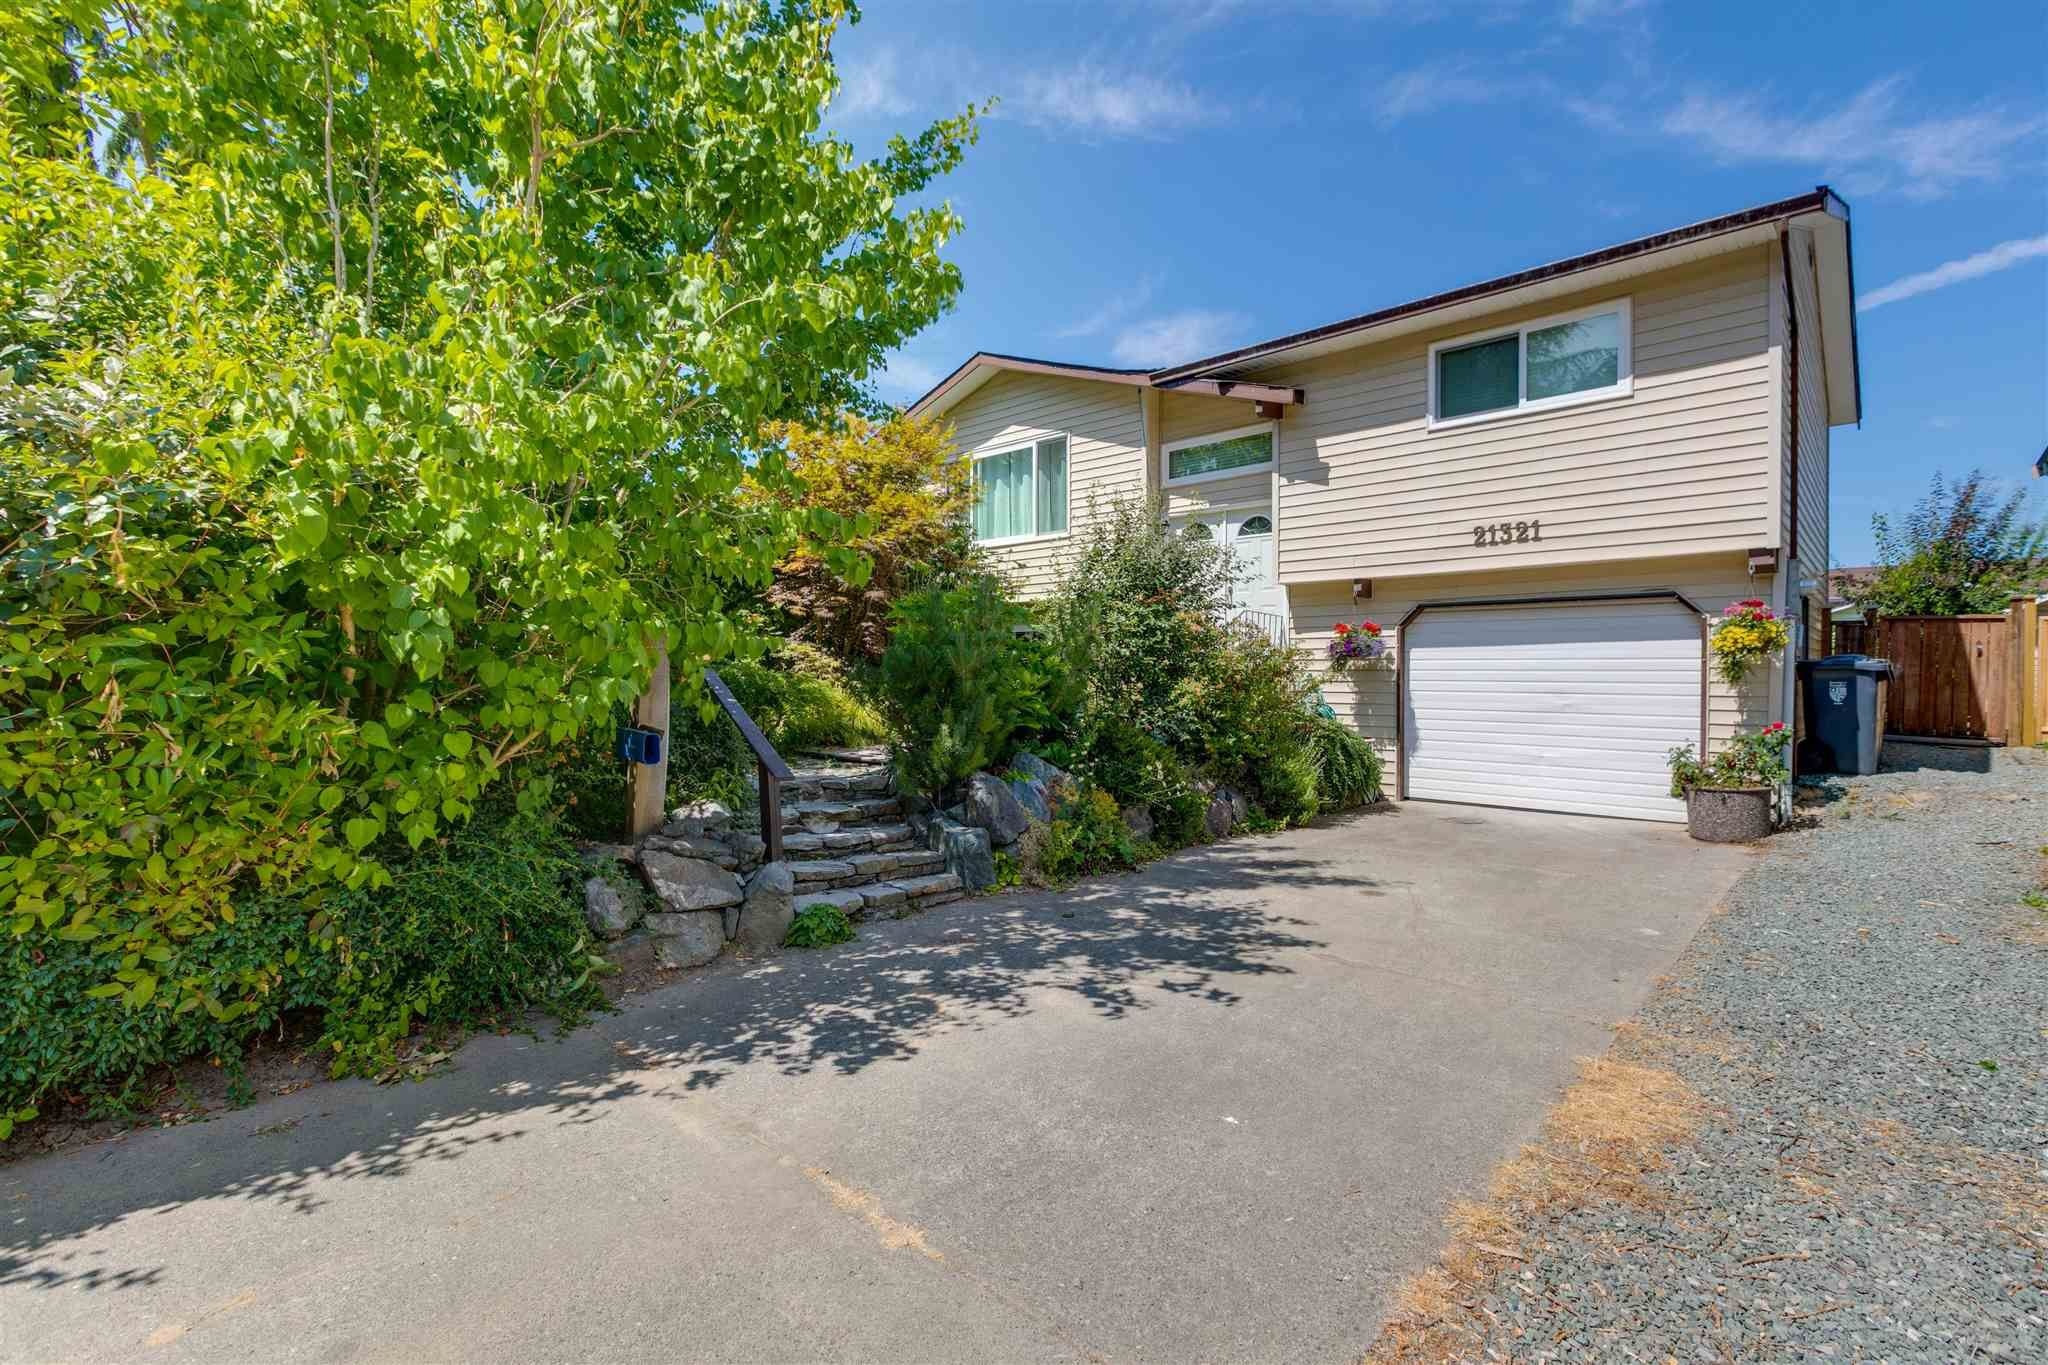 Main Photo: 21321 91B Avenue in Langley: Walnut Grove House for sale : MLS®# R2606673